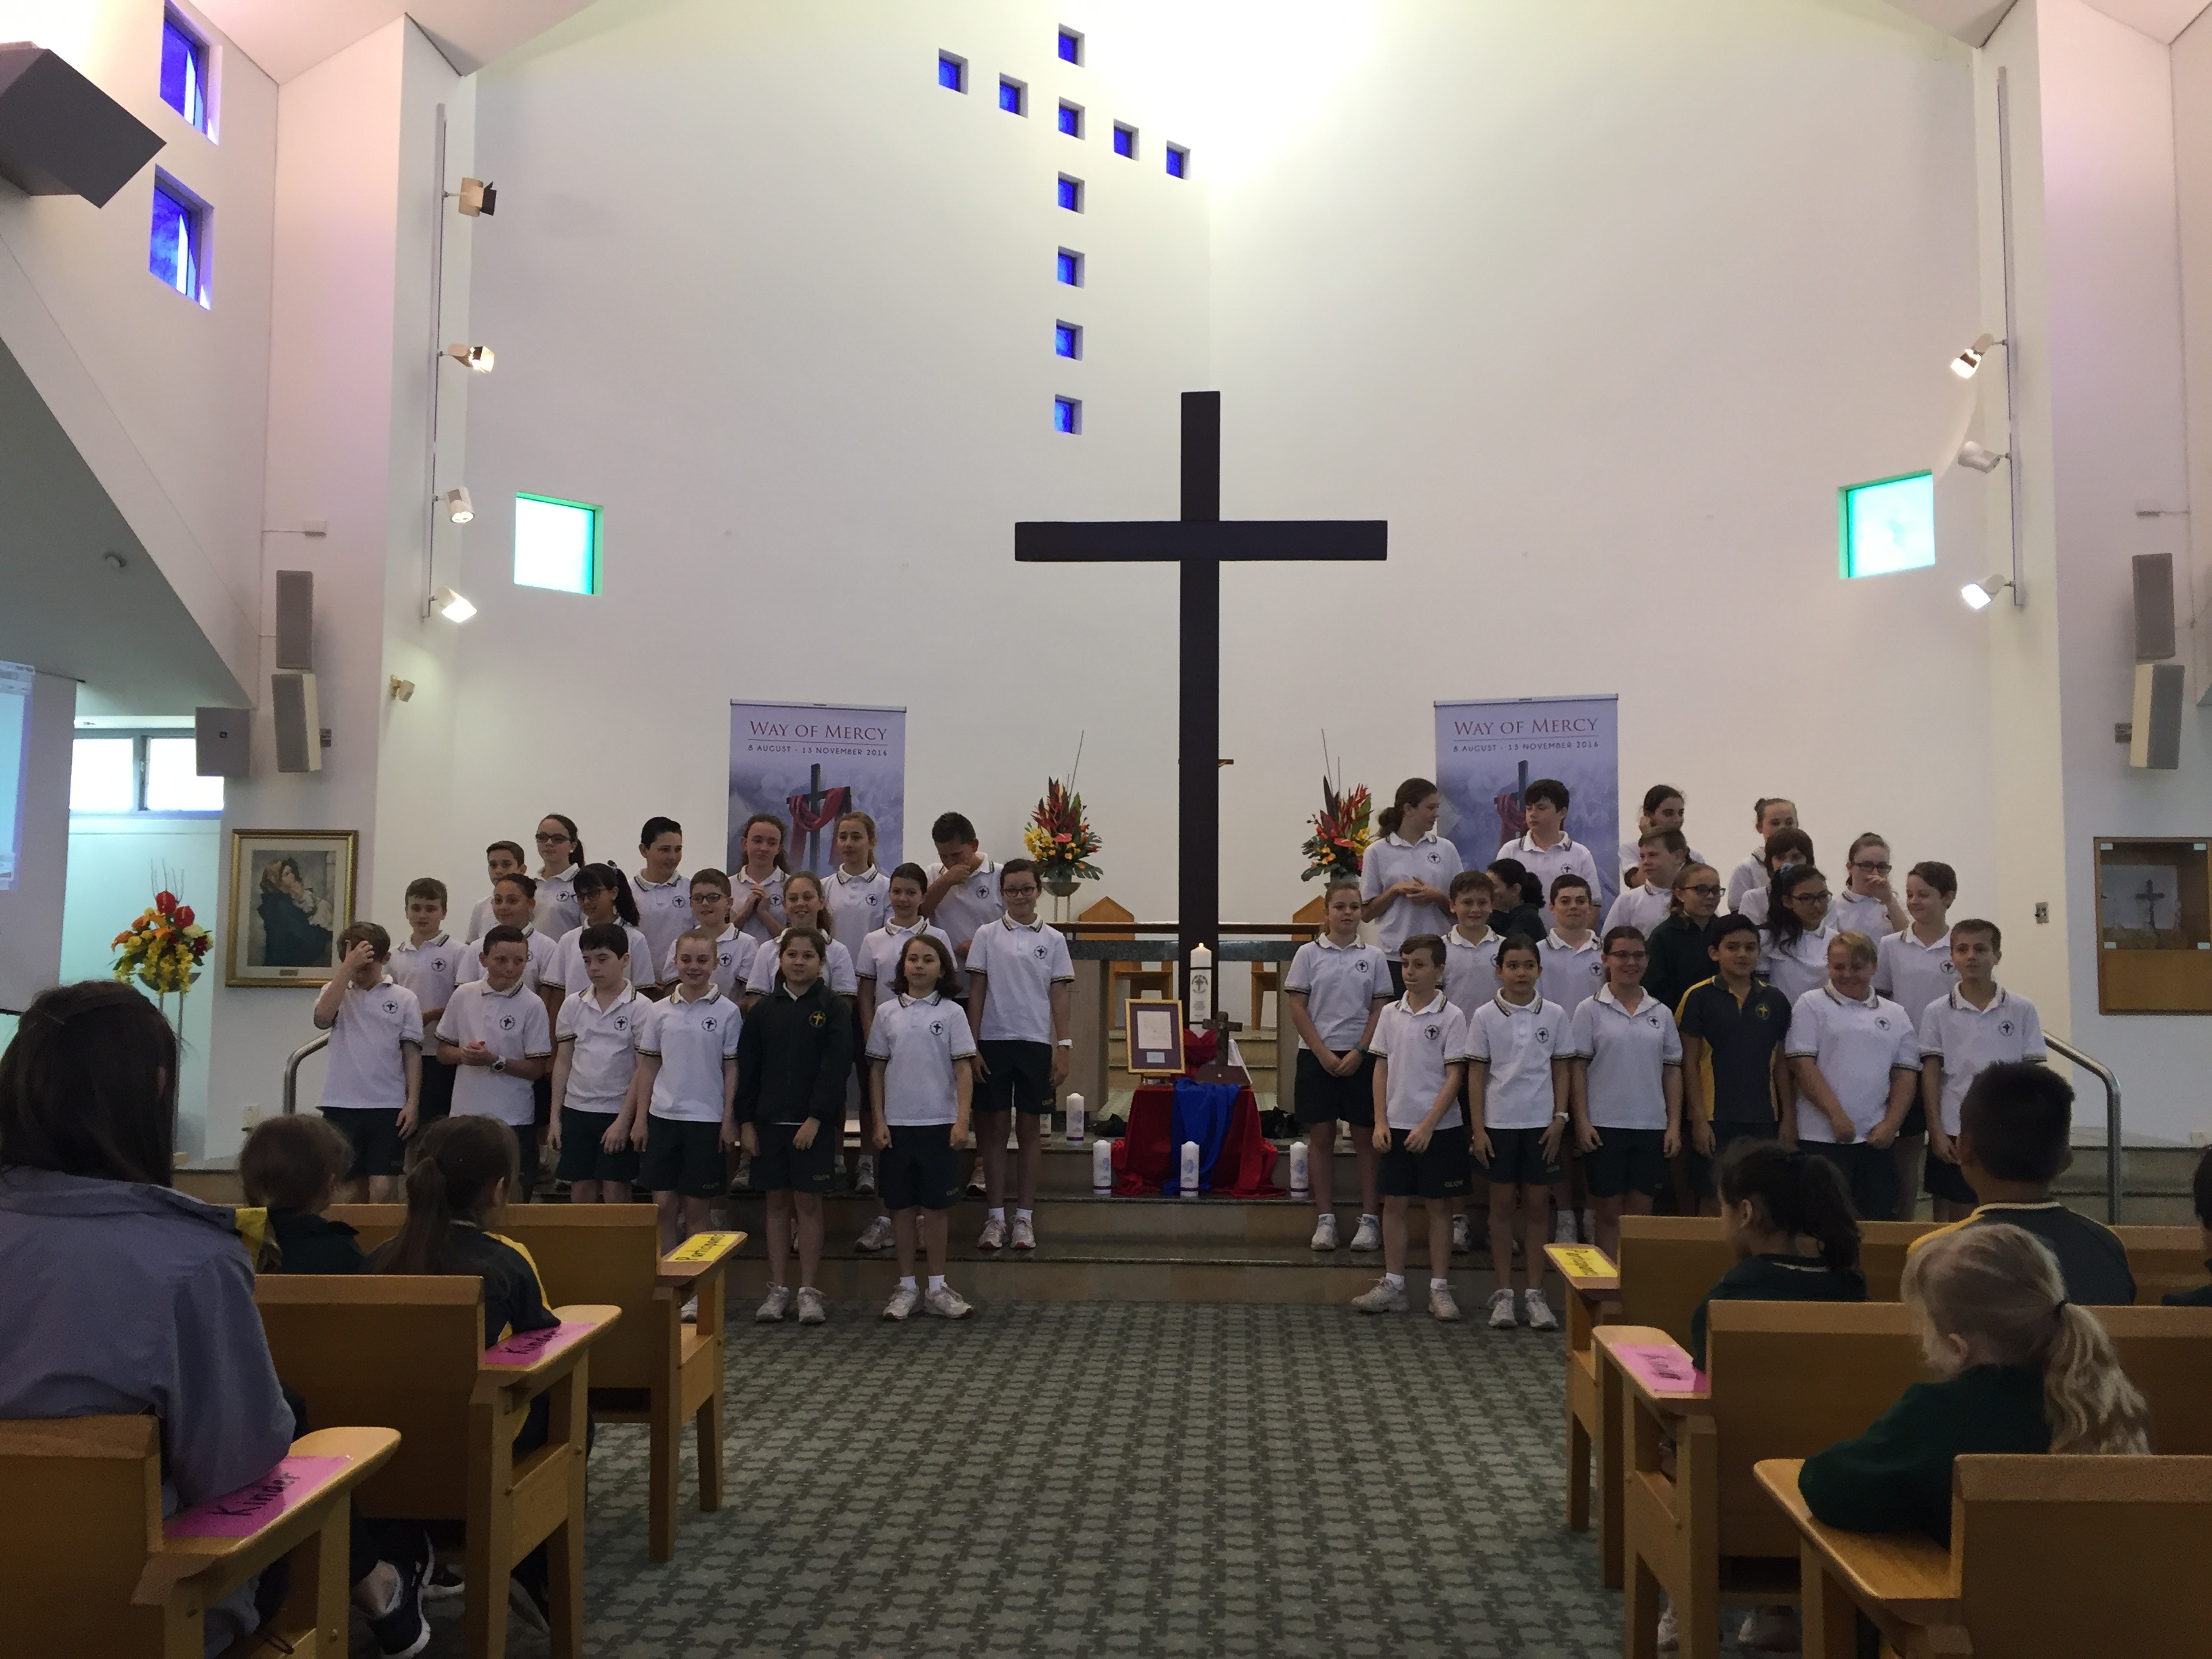 Way of Mercy Cross and Relics Yr 6 2016